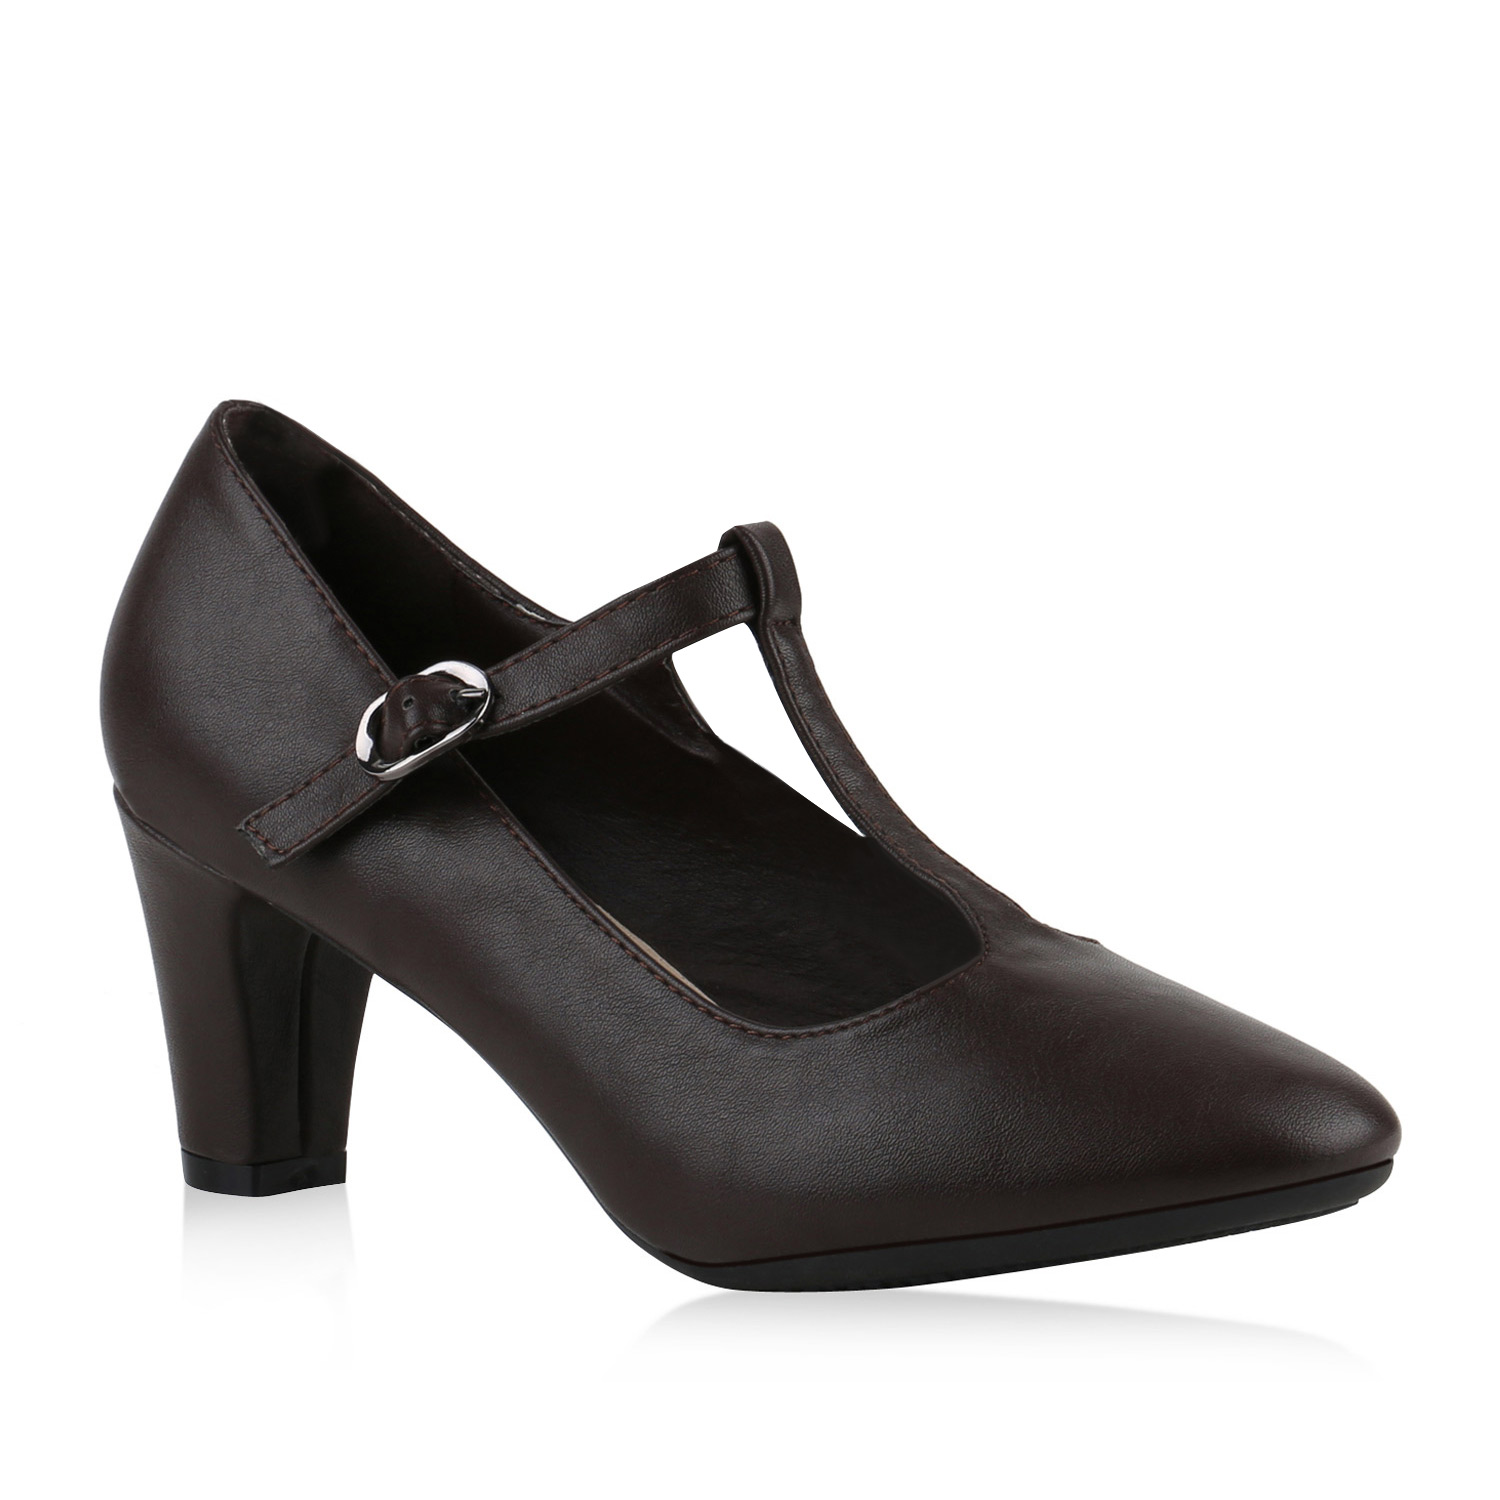 Damen Pumps Mary Janes - Dunkelbraun